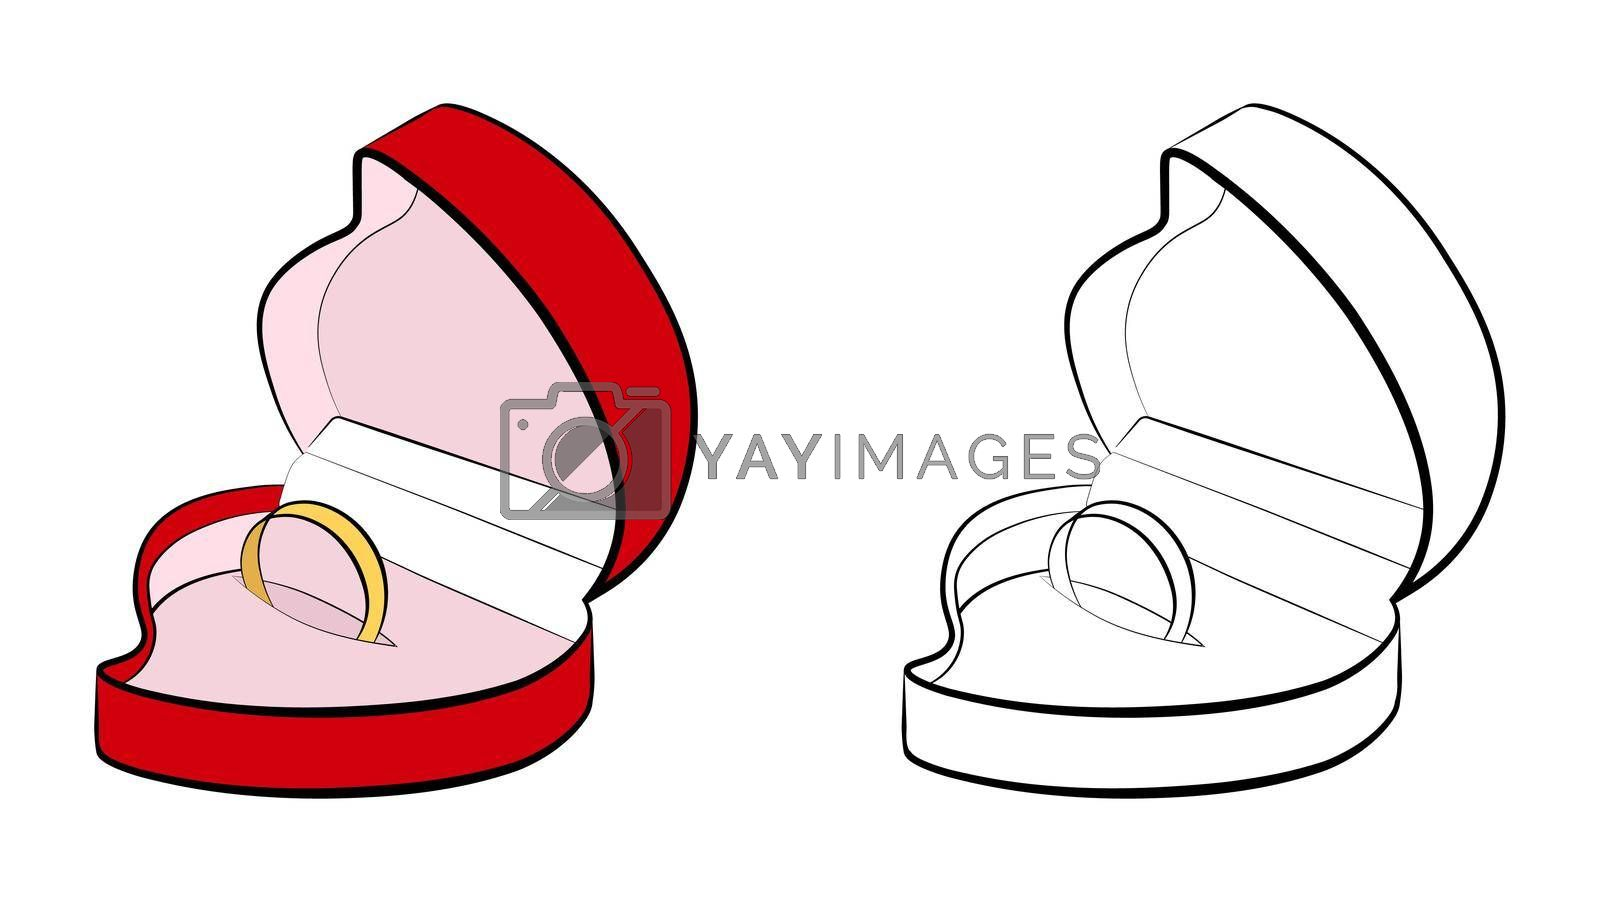 open case in the shape of a heart with a wedding ring. Marriage, family, wedding ceremony. Isolated eyelid on a white background